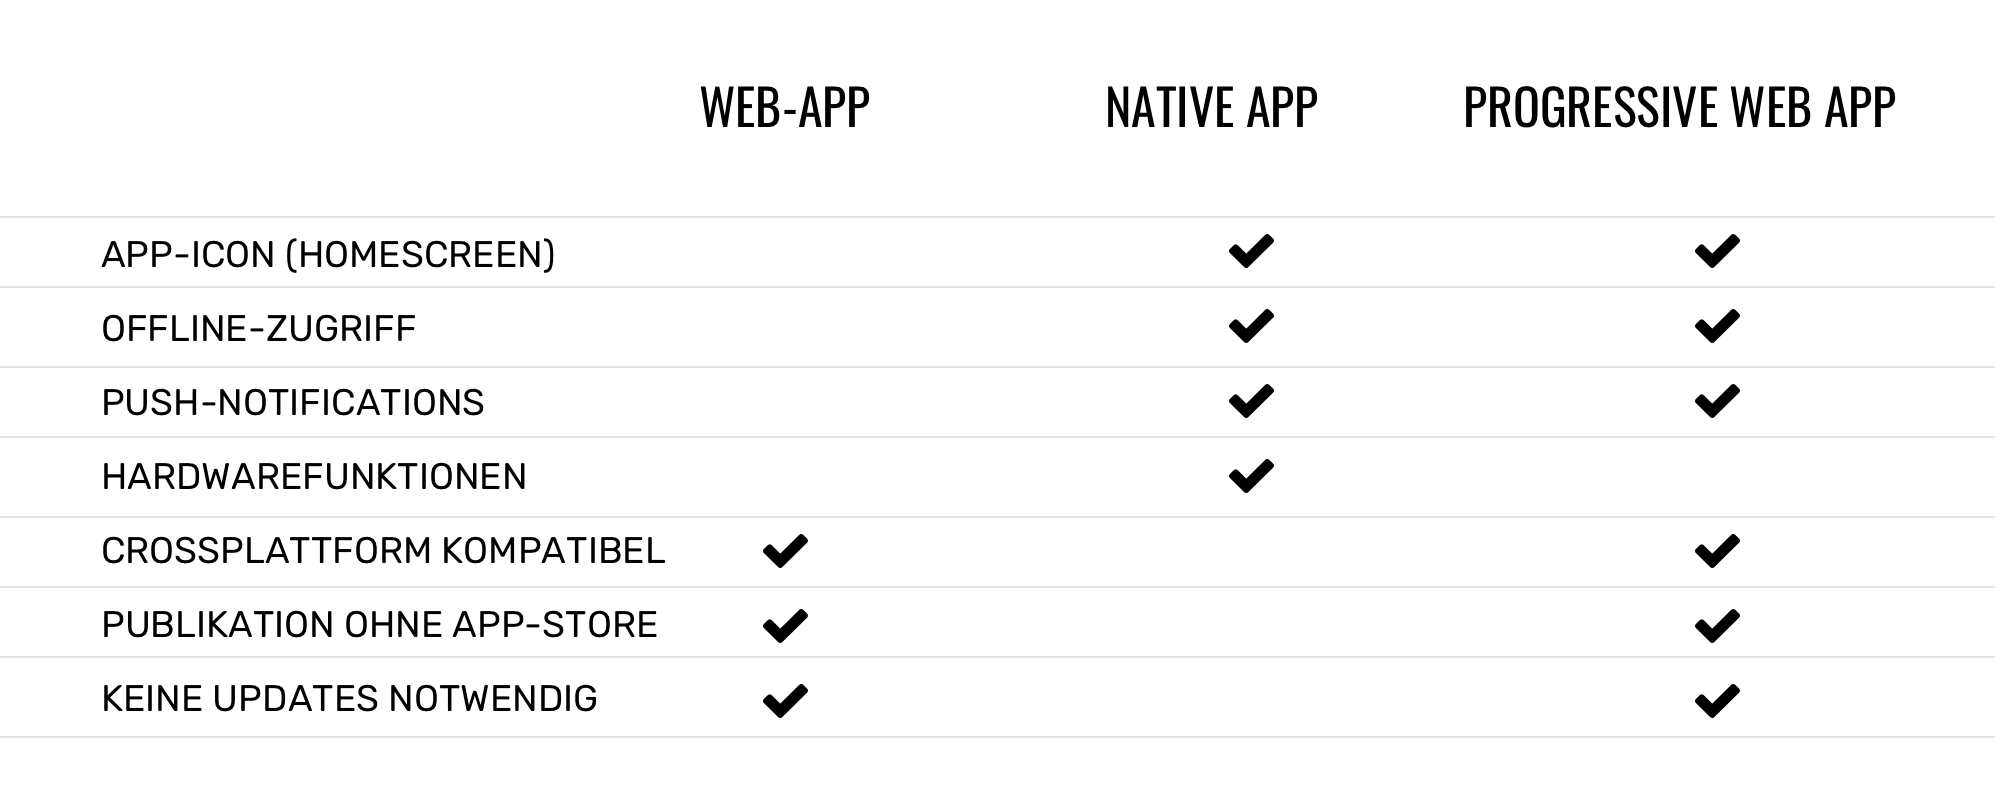 Vergleich Web-App, Native App, Progressive Web App (PWA)